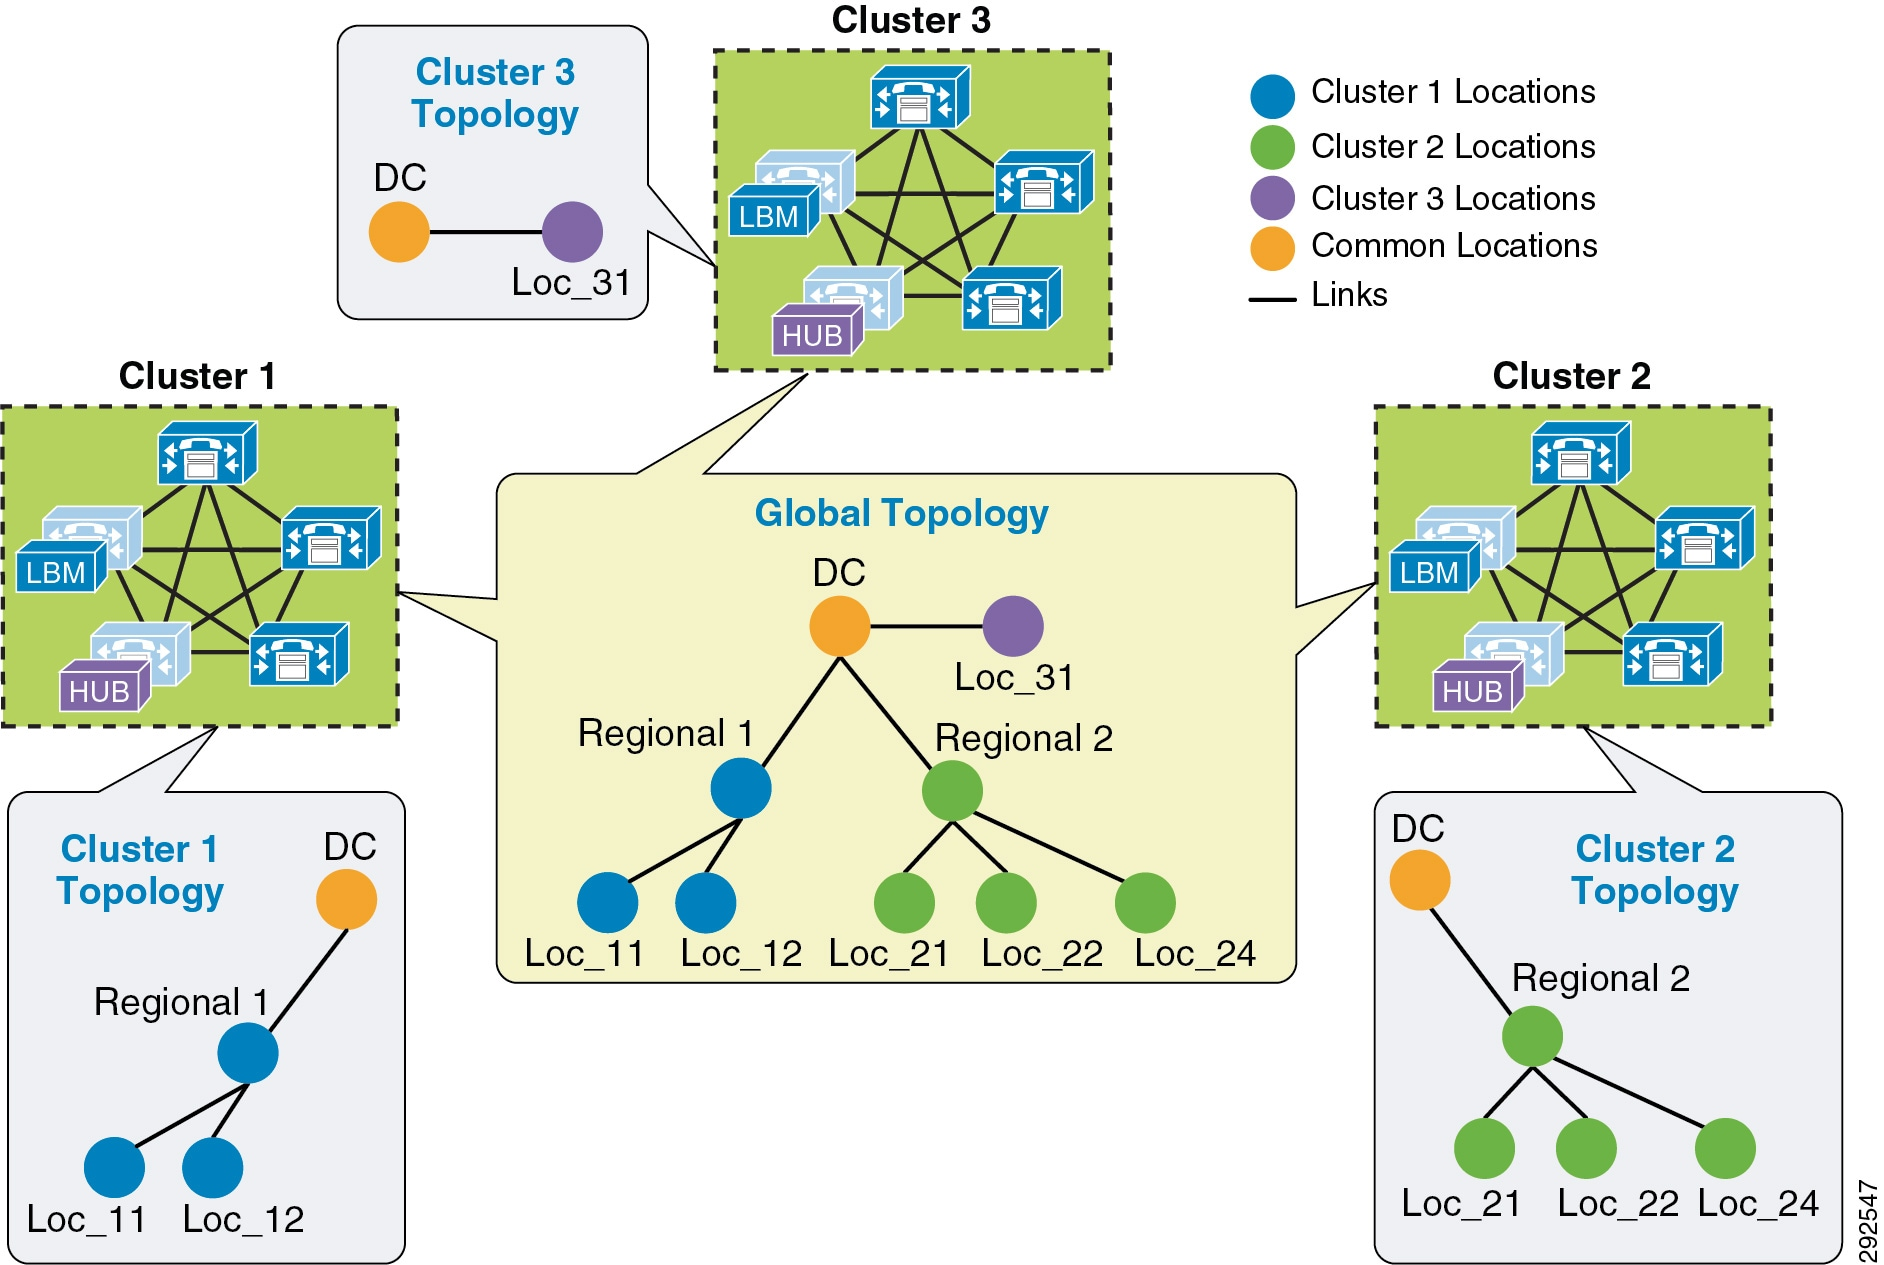 Cisco Collaboration System 11x Solution Reference Network Designs Here Are The Diagrams For Intermediate Switches Marked With L1 L2 In Figure 13 32 Cluster 1 Has Devices Locations Regional Loc 11 And 12 But It Requires Configuring Dc A Link From To Order